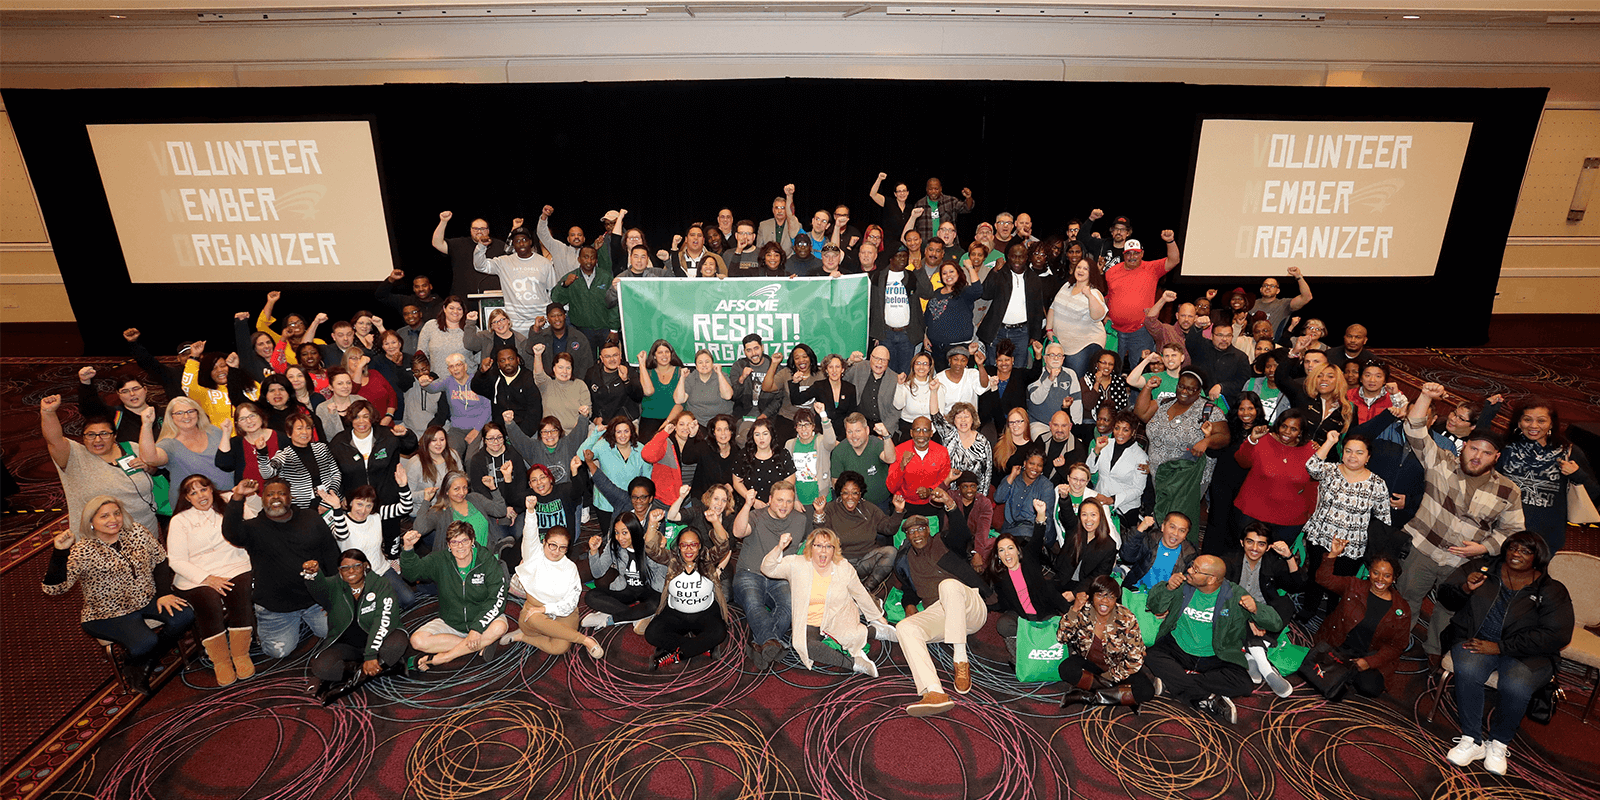 AFSCME members at the Rise Up! Conference in Las Vegas